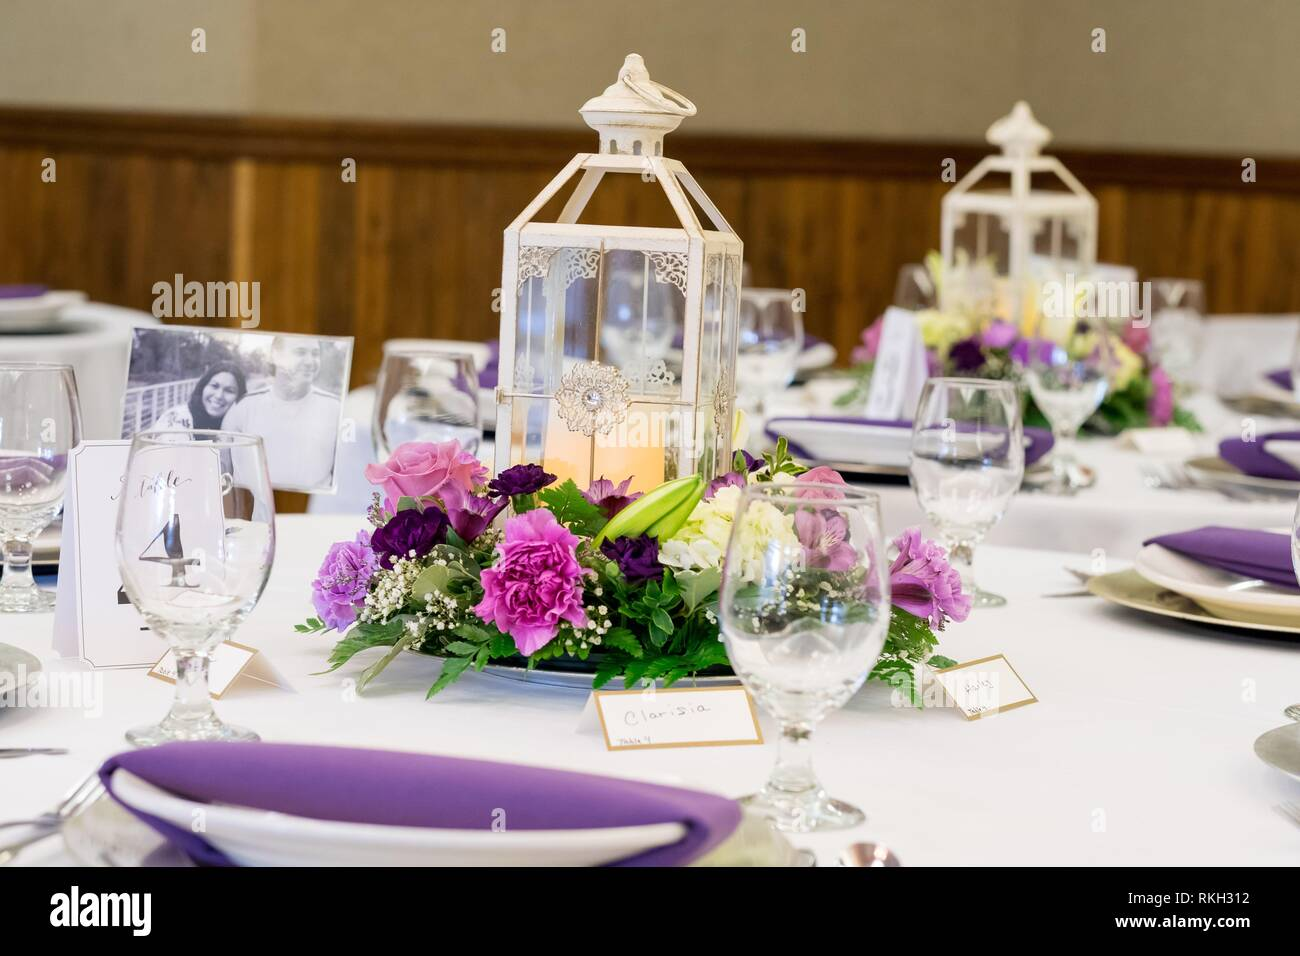 Wedding reception centerpieces of candle lanterns on tables decorated with  flowers from a local florist Stock Photo - Alamy